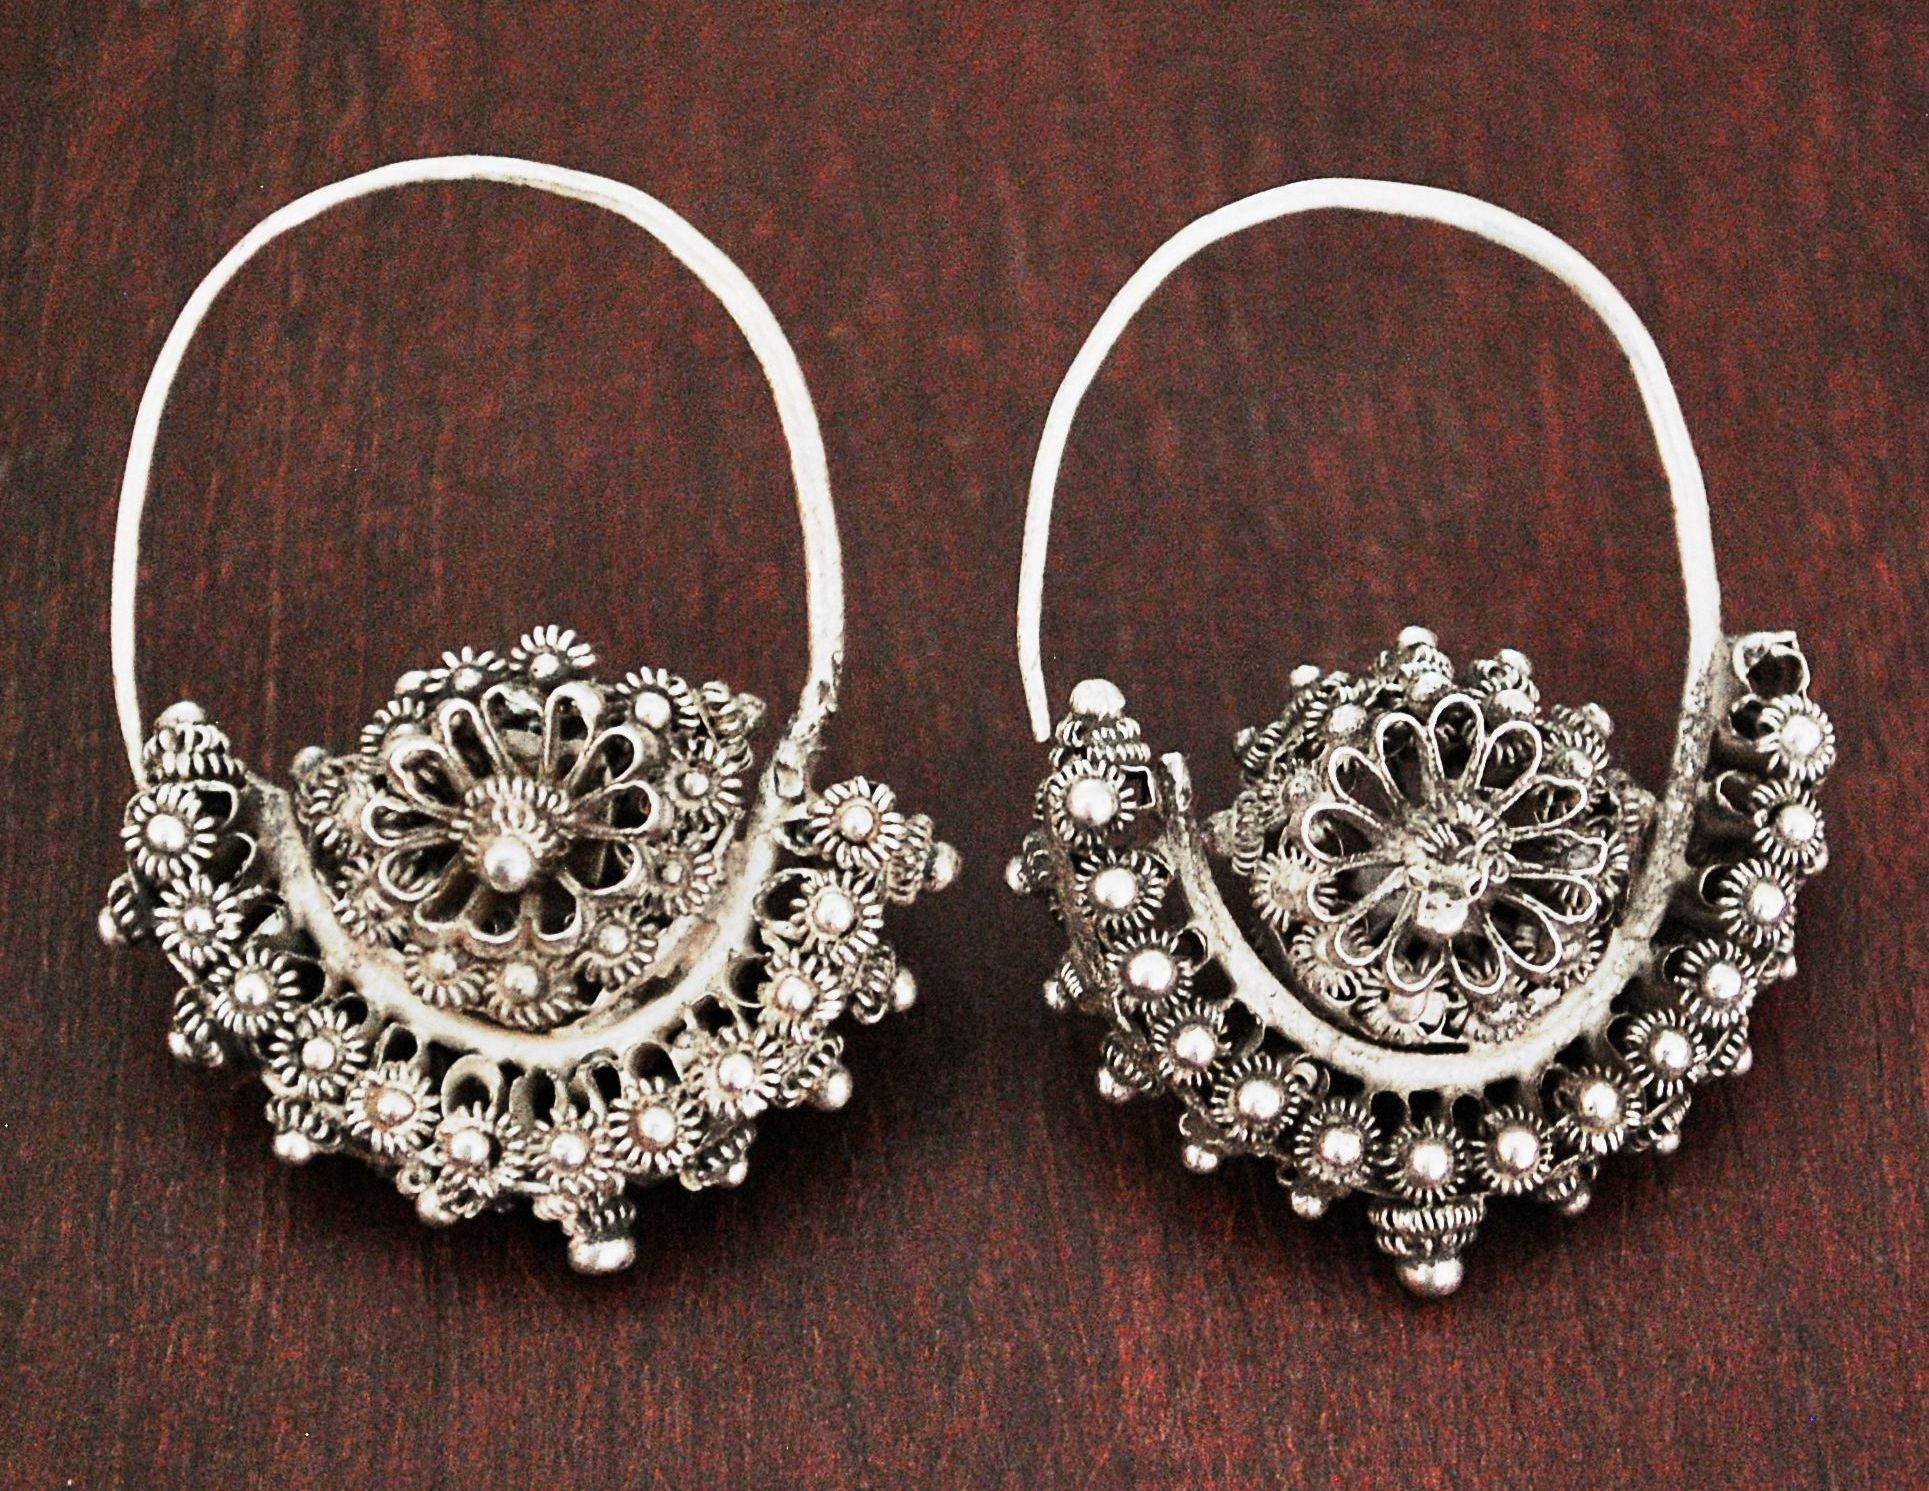 Antique Uyghur Earrings from China